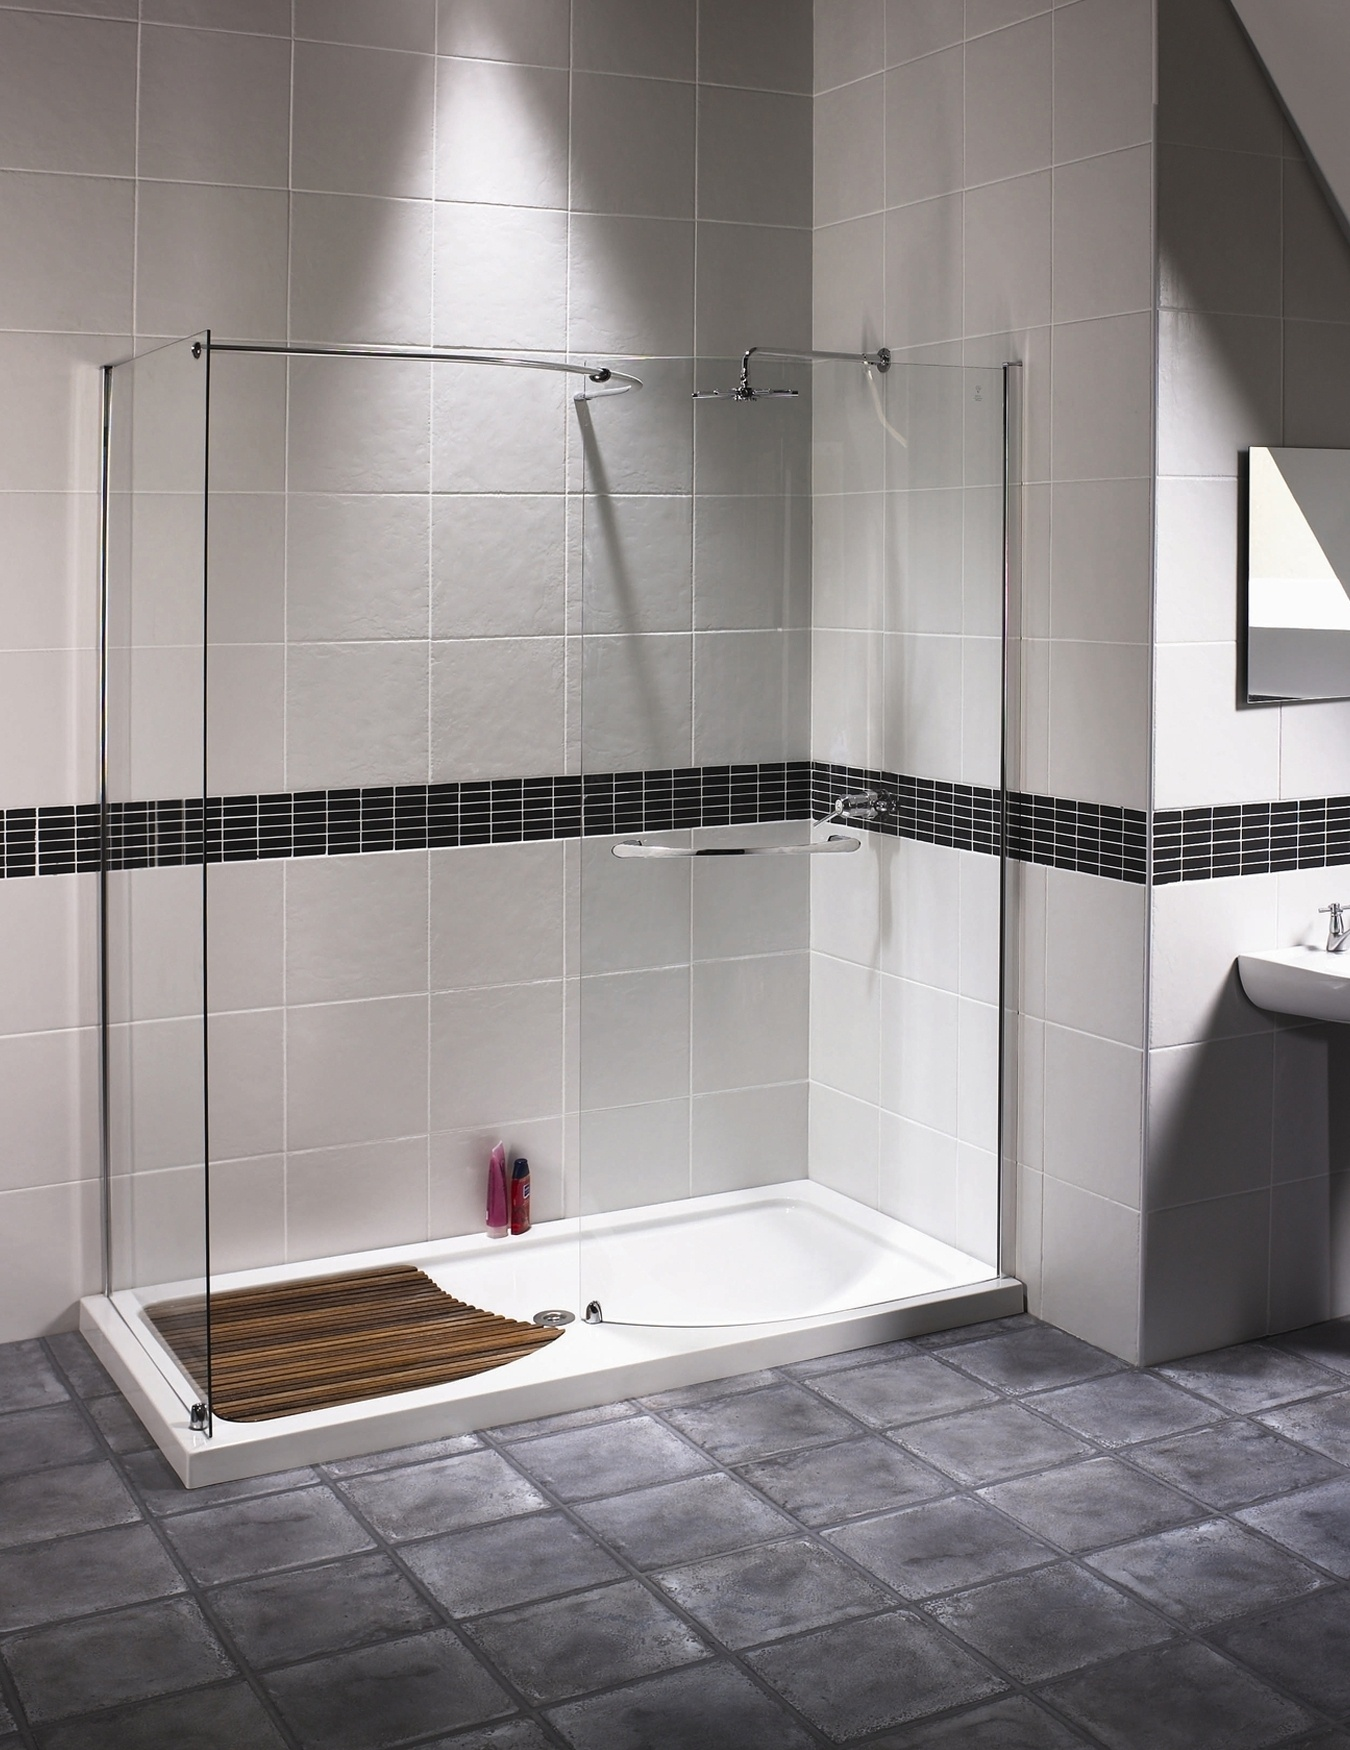 Luton Plumbing Experts - How to Find Them?